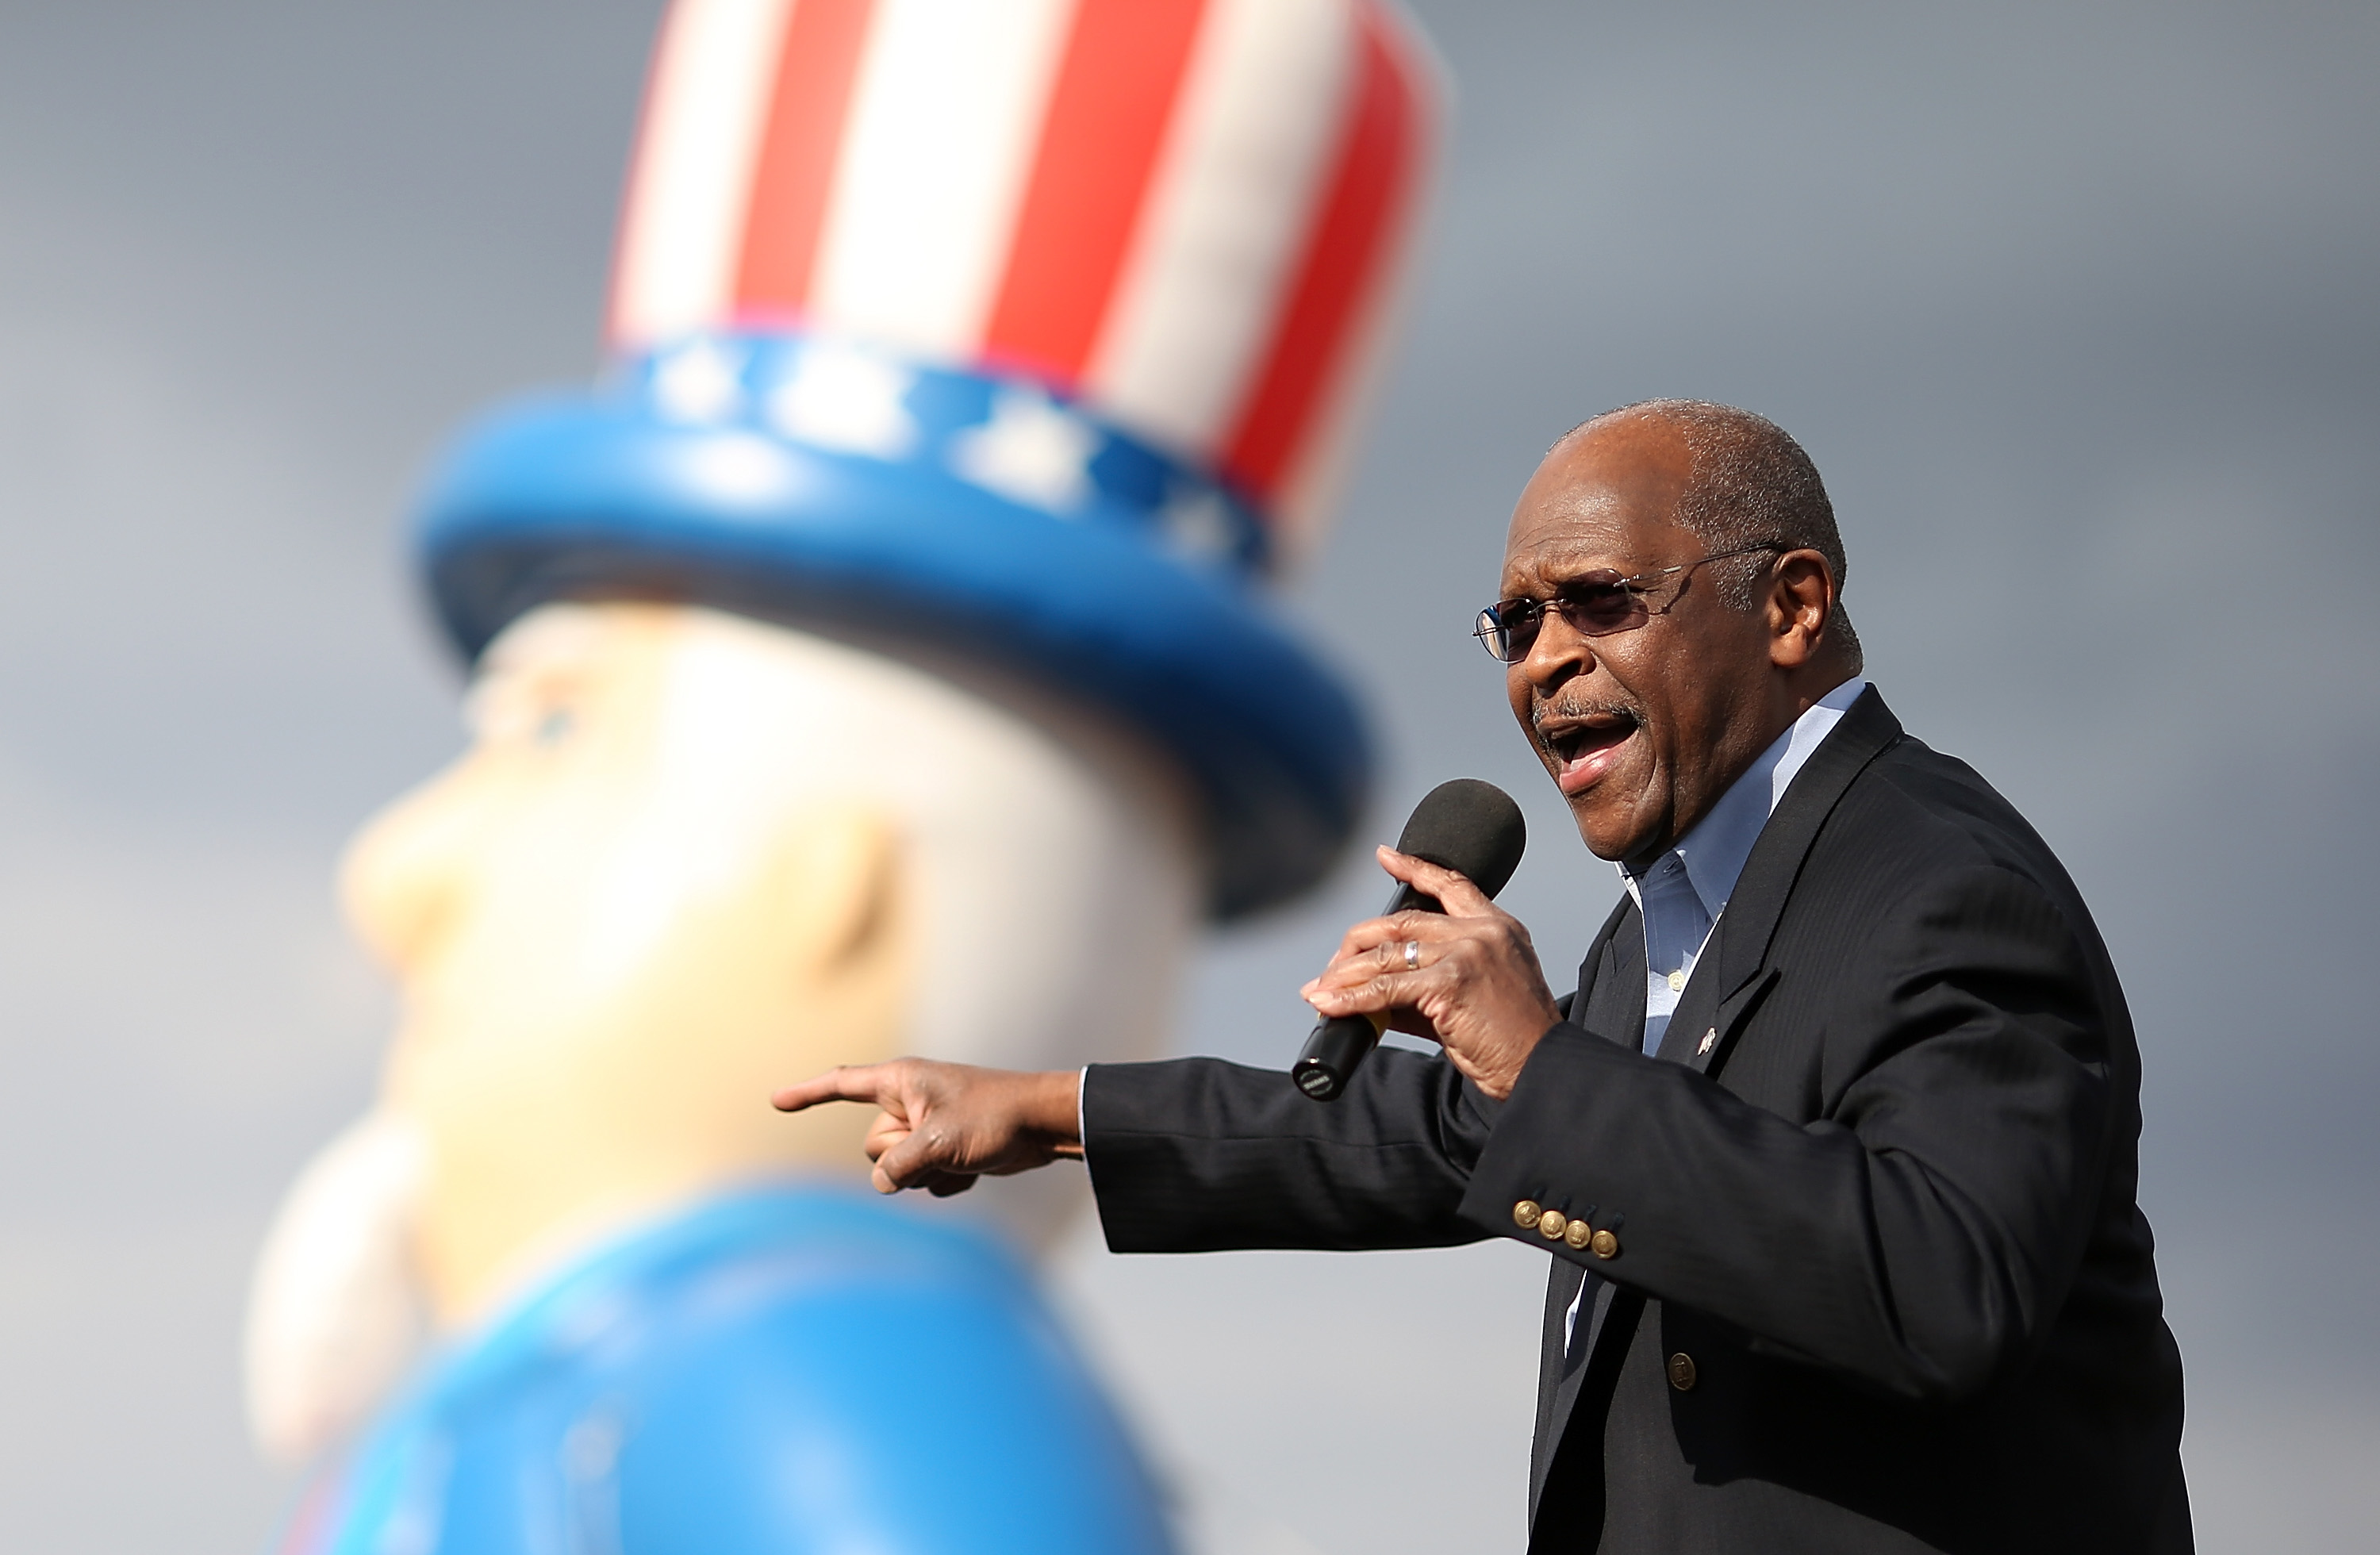 Trump plans to nominate a second loyalist to the Fed: Herman Cain